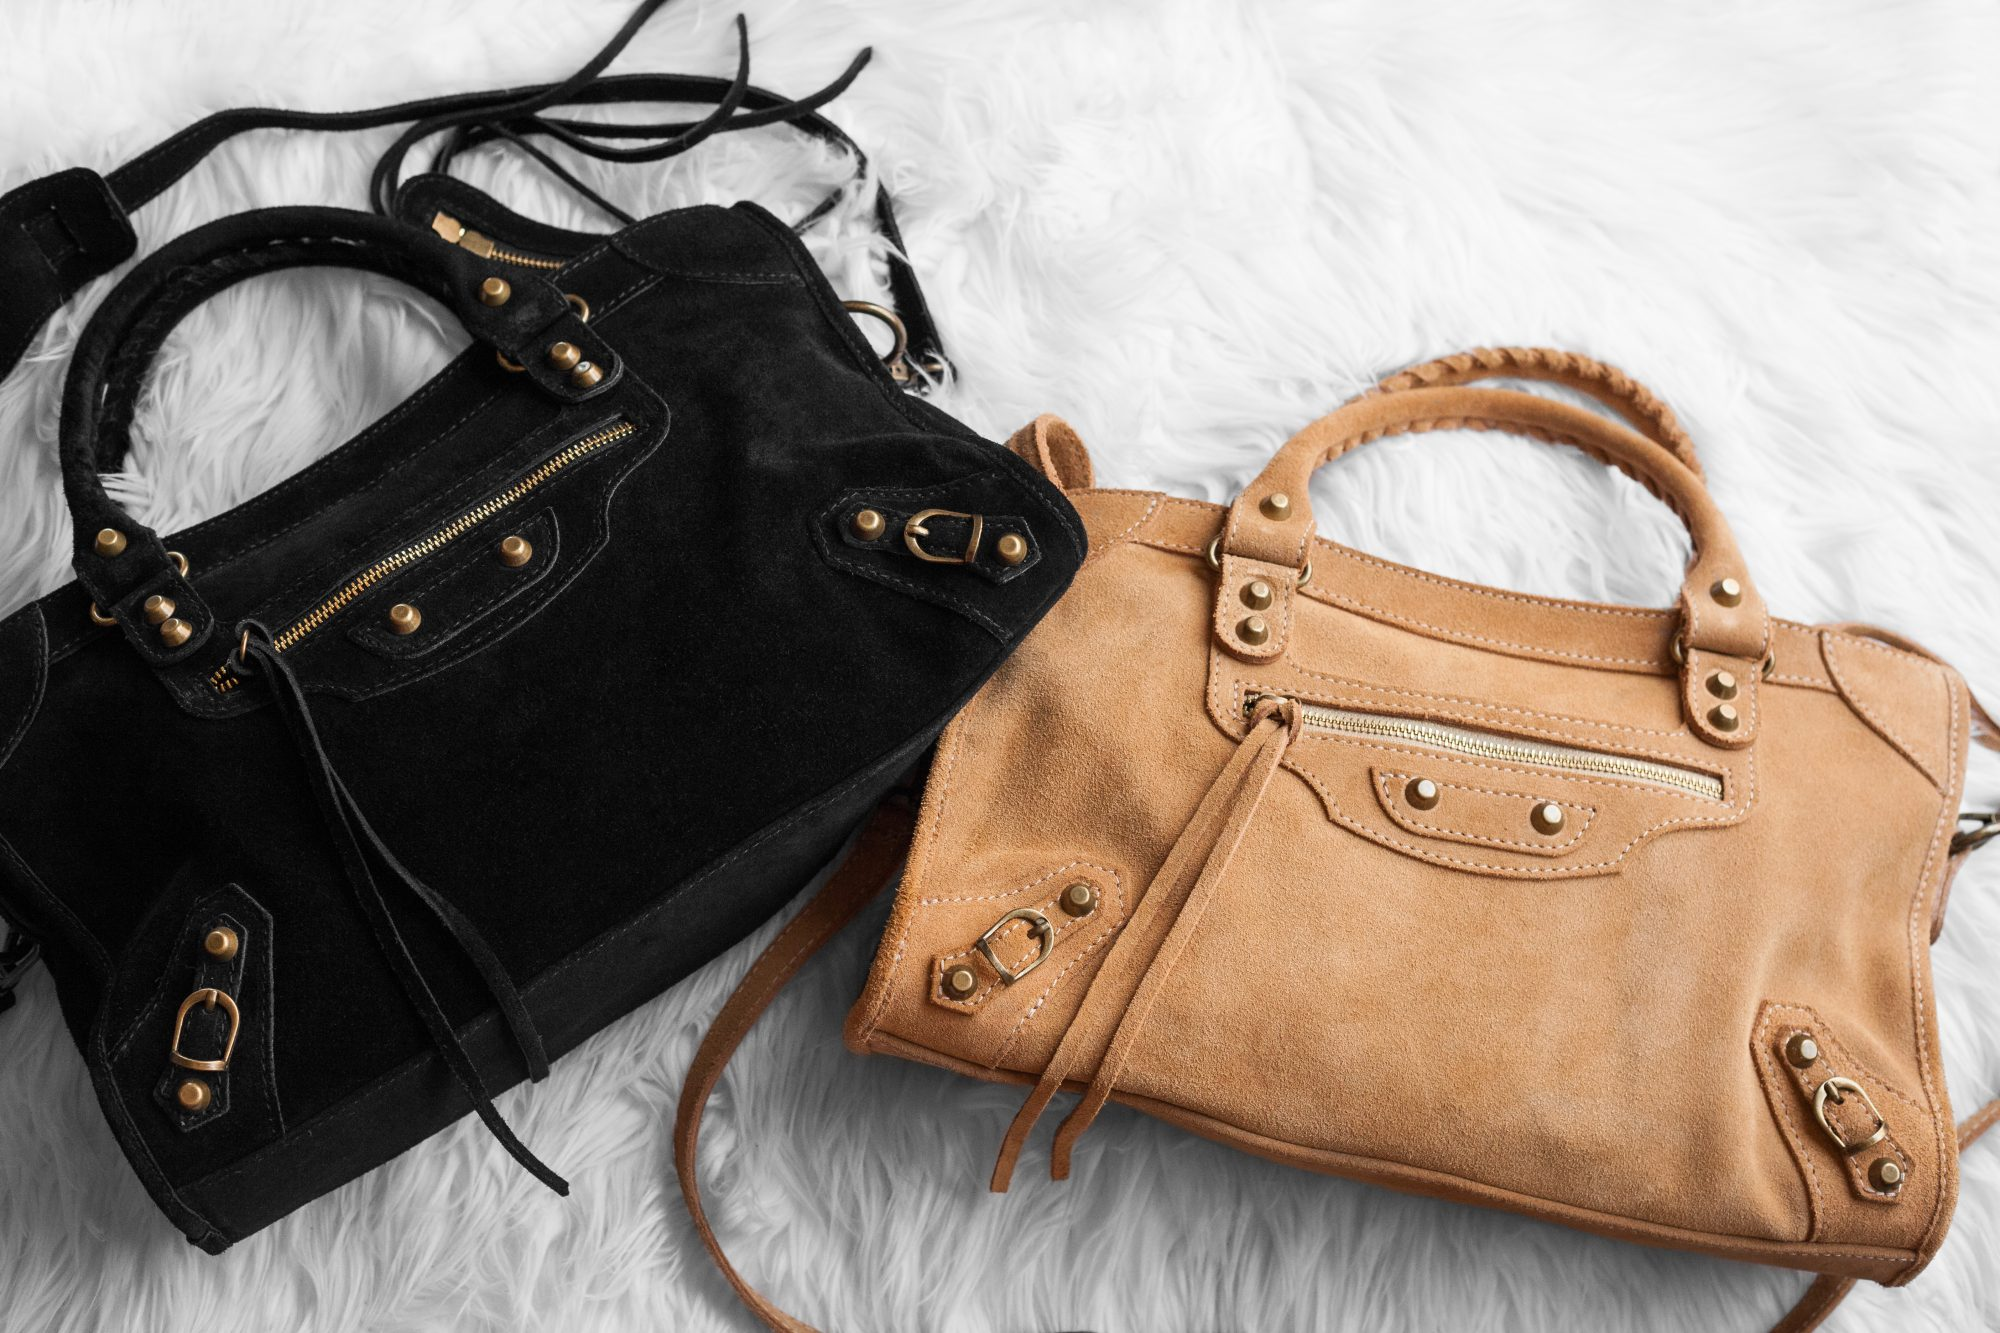 The Look For Less: Balenciaga City Bag - $2,190 vs. $105 - THE BALLER ON A BUDGET - An Affordable Fashion, Beauty & Lifestyle Blog